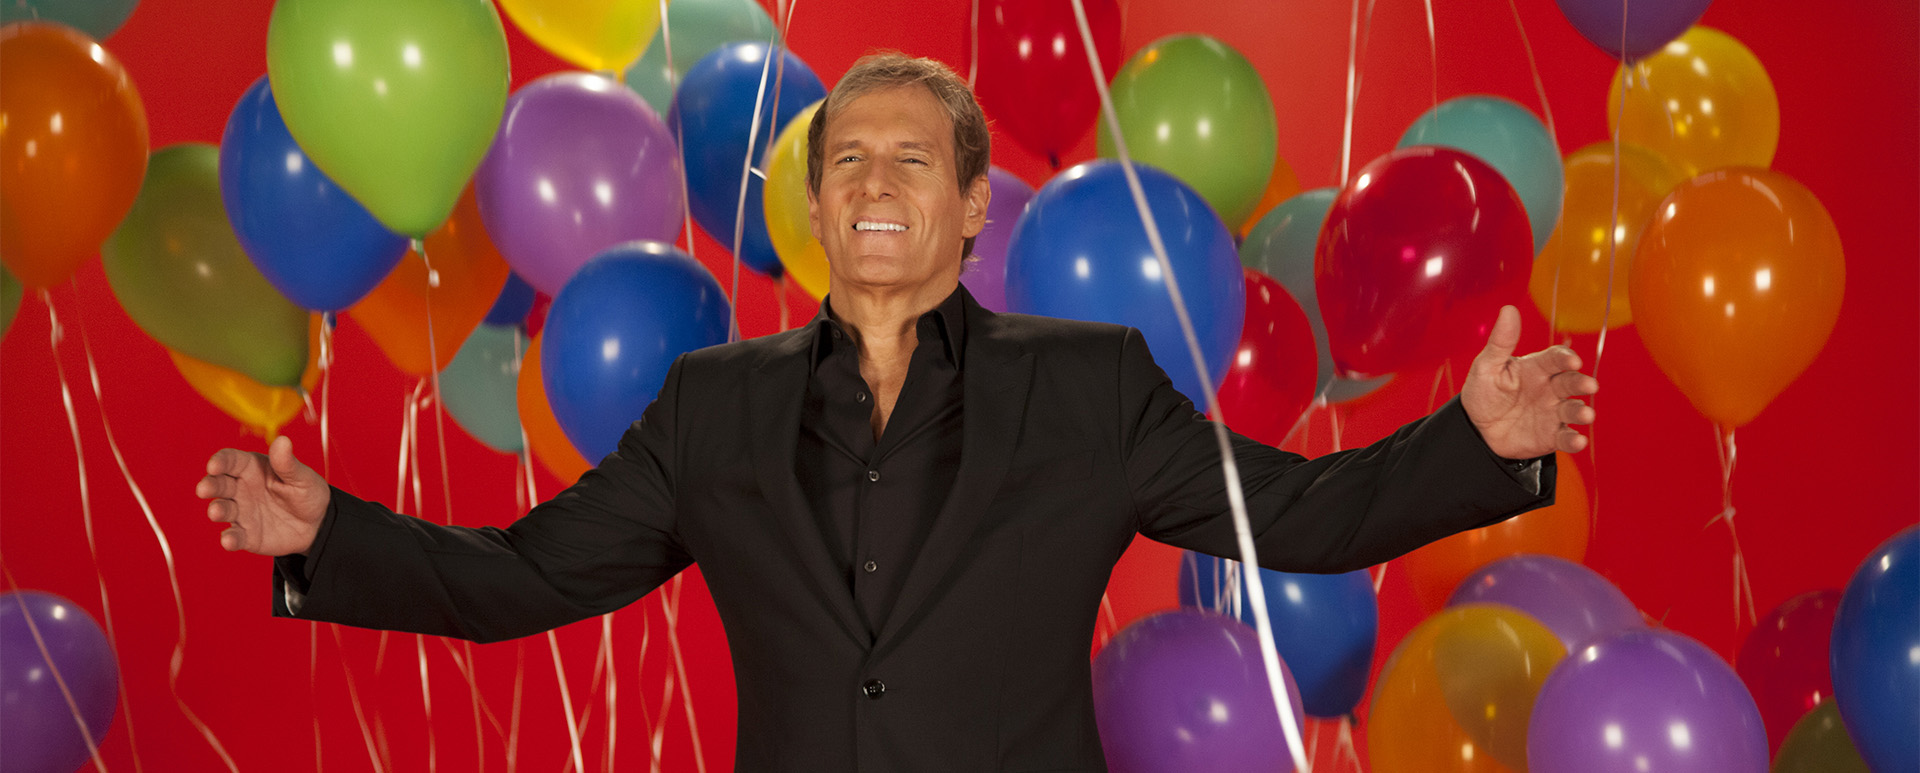 Celebrate birthdays in an epic way with new michael bolton video celebrate birthdays in an epic way with new michael bolton video ecard from american greetings m4hsunfo